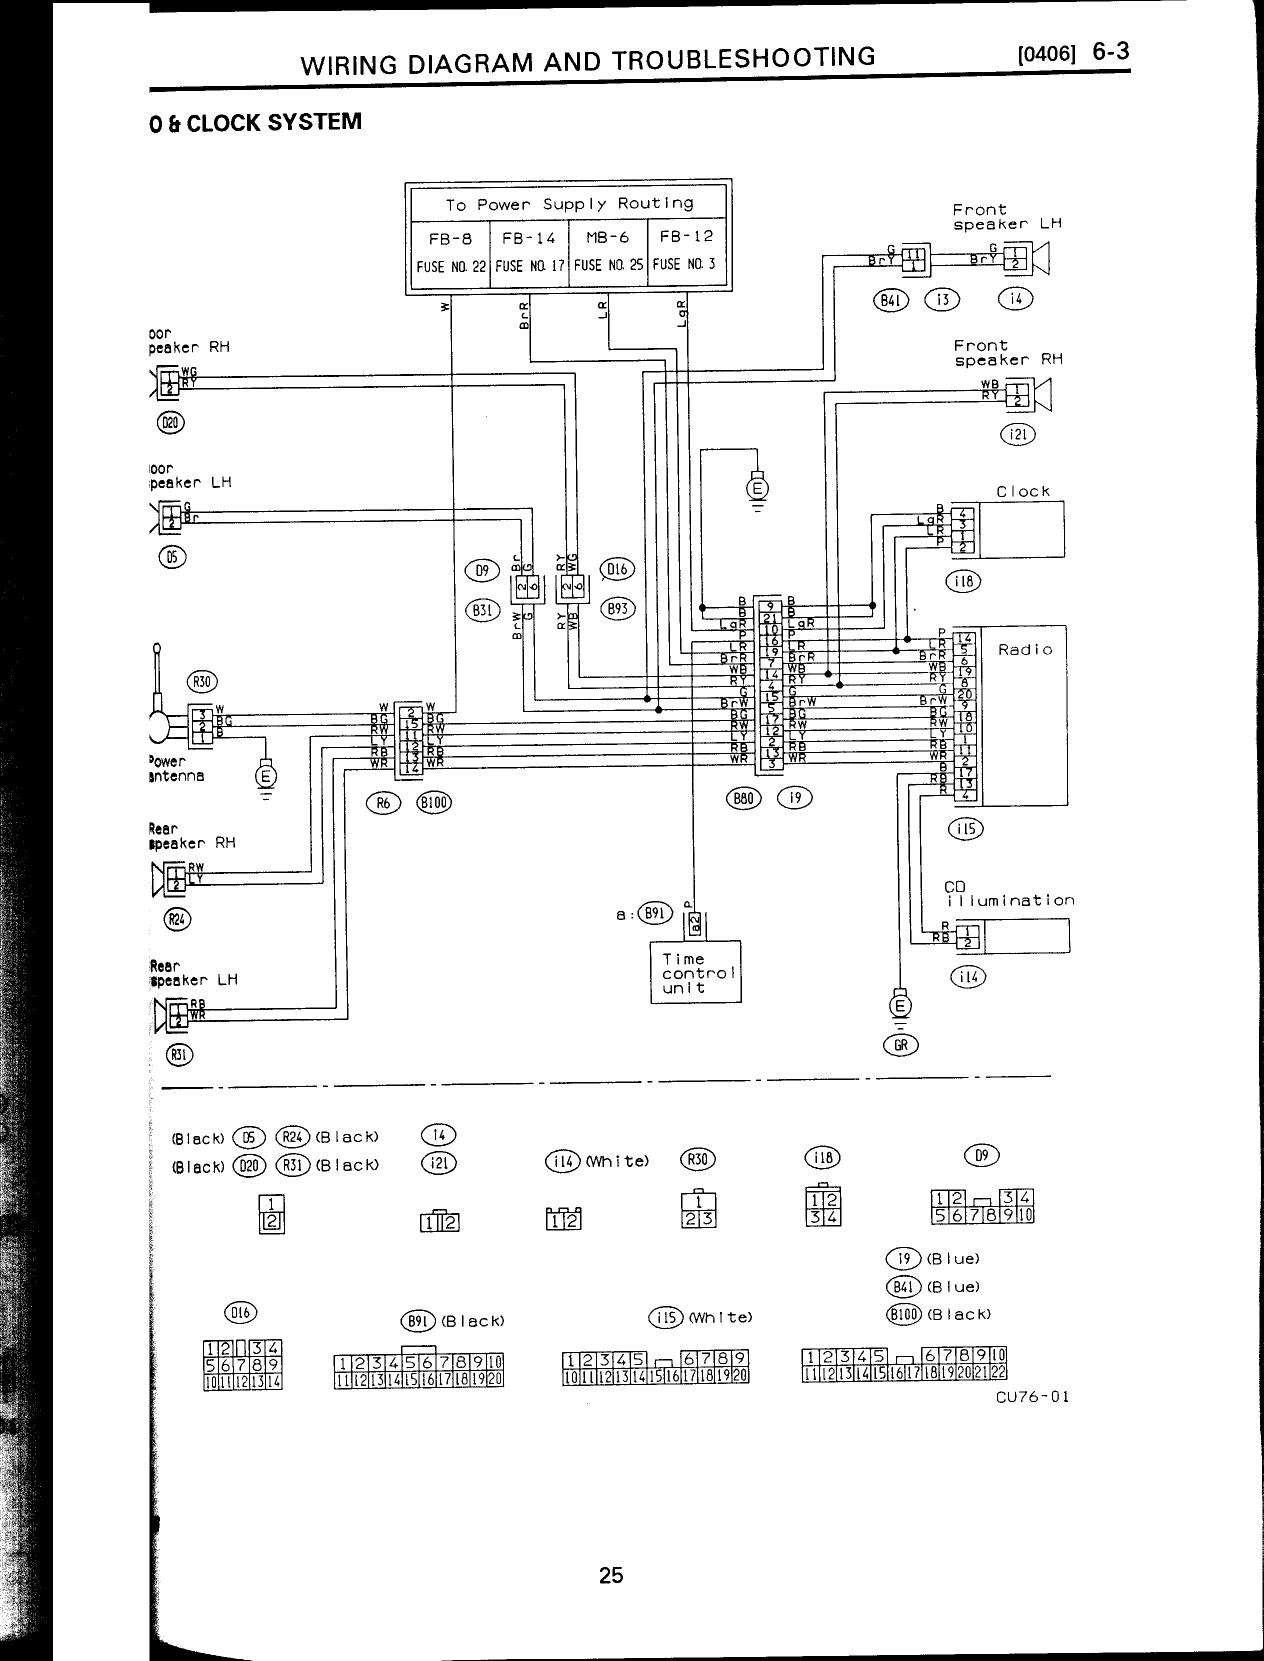 251 j SVXRadioWrg subaru legacy wiring diagram radio wiring diagram and schematic 2001 subaru legacy wiring diagram at panicattacktreatment.co